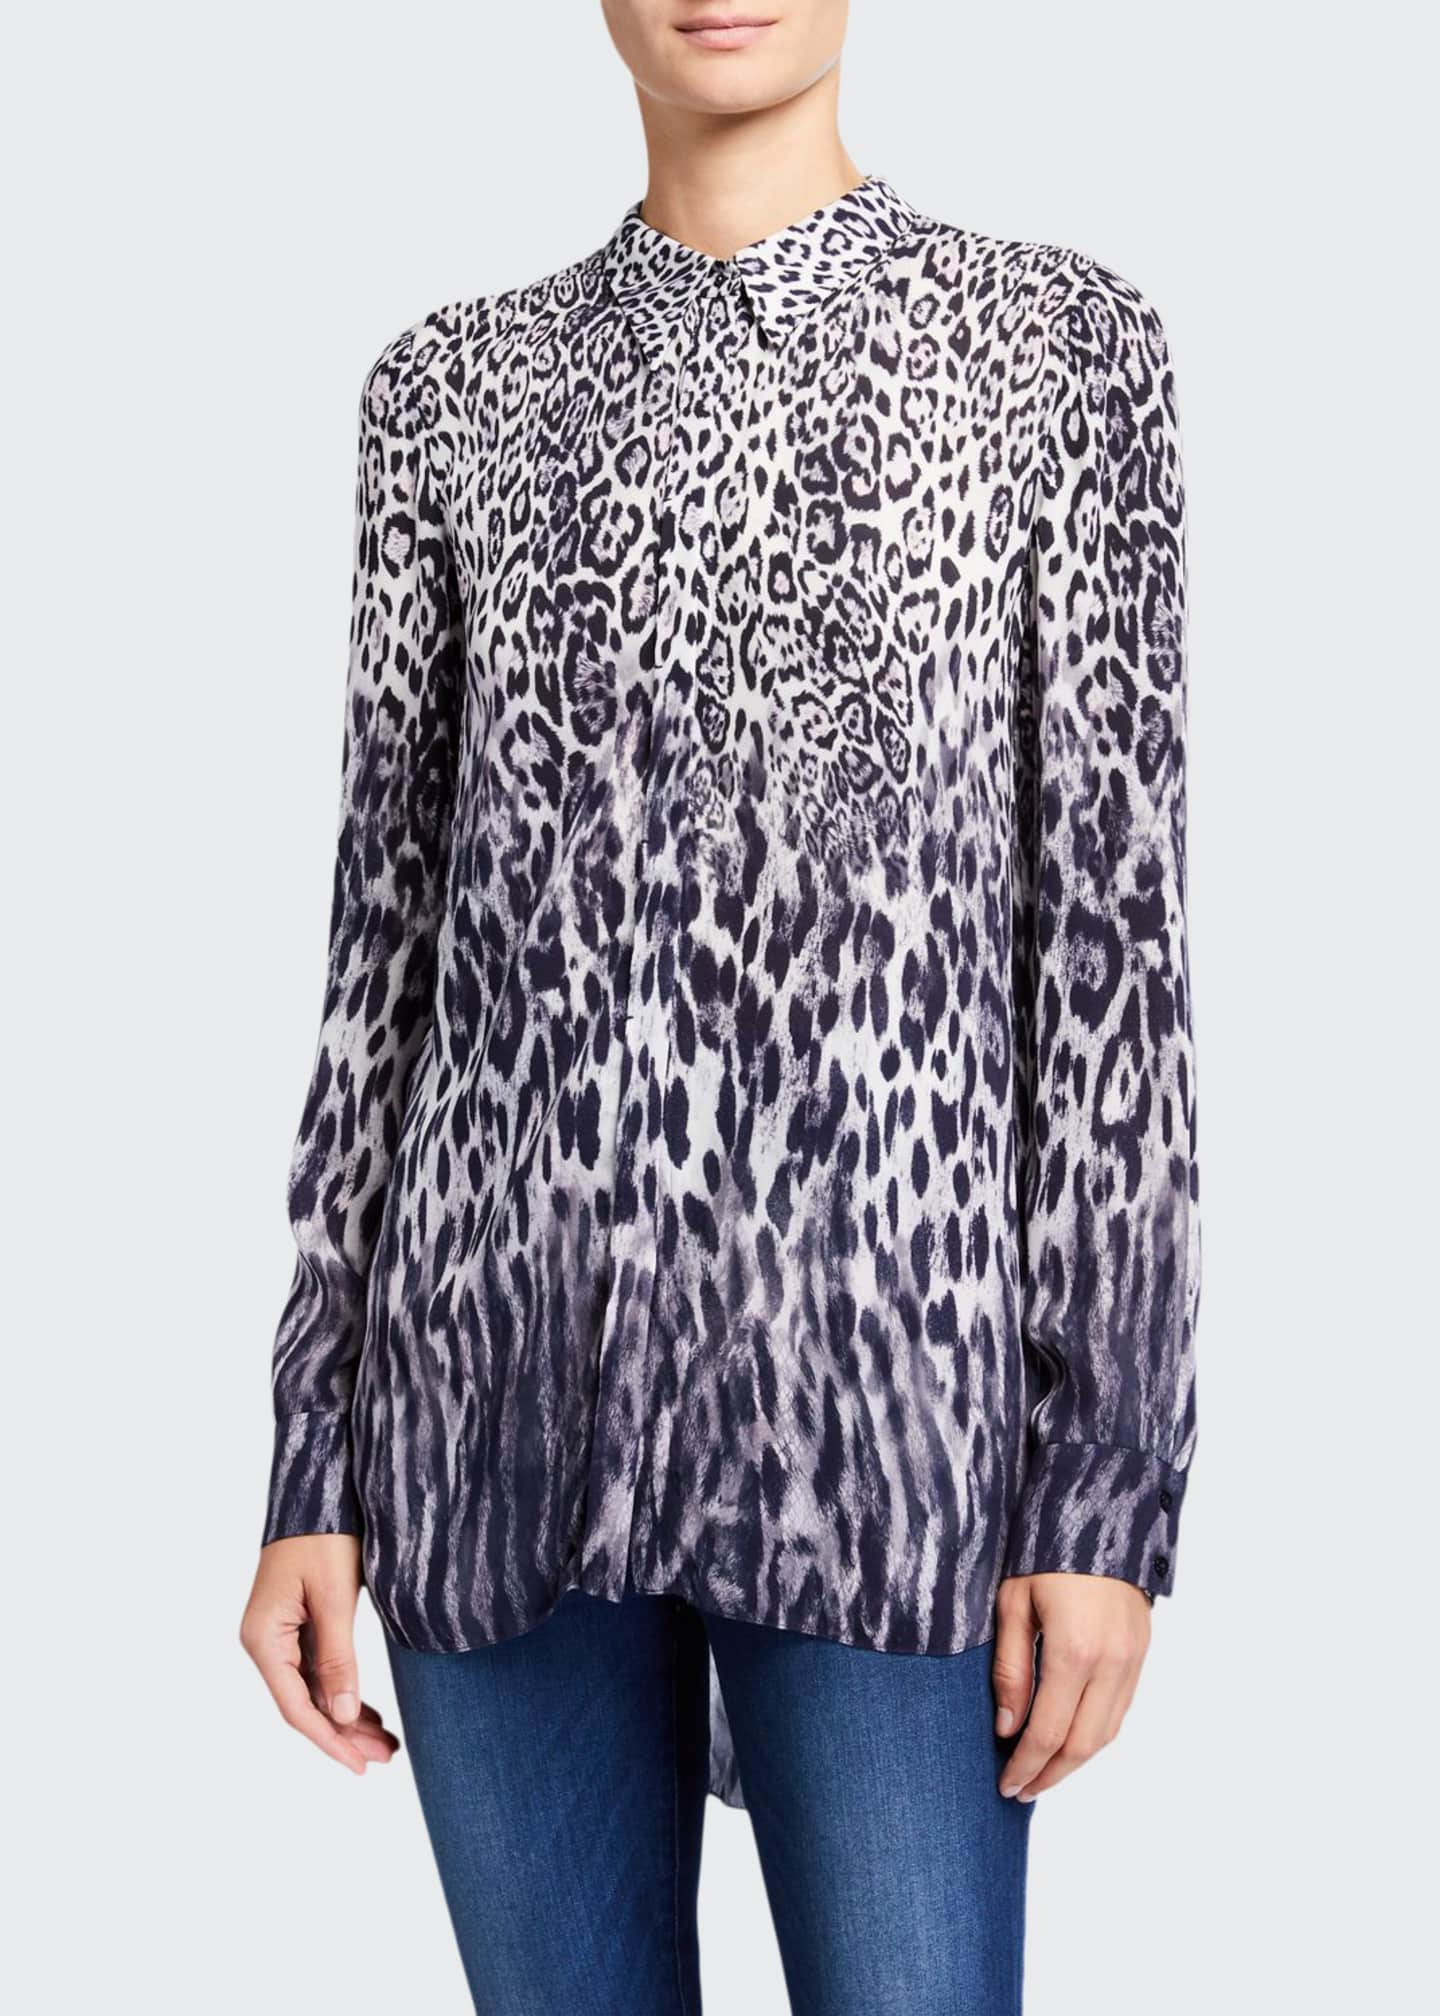 Elie Tahari Ingunn Animal-Print Button-Down Shirt